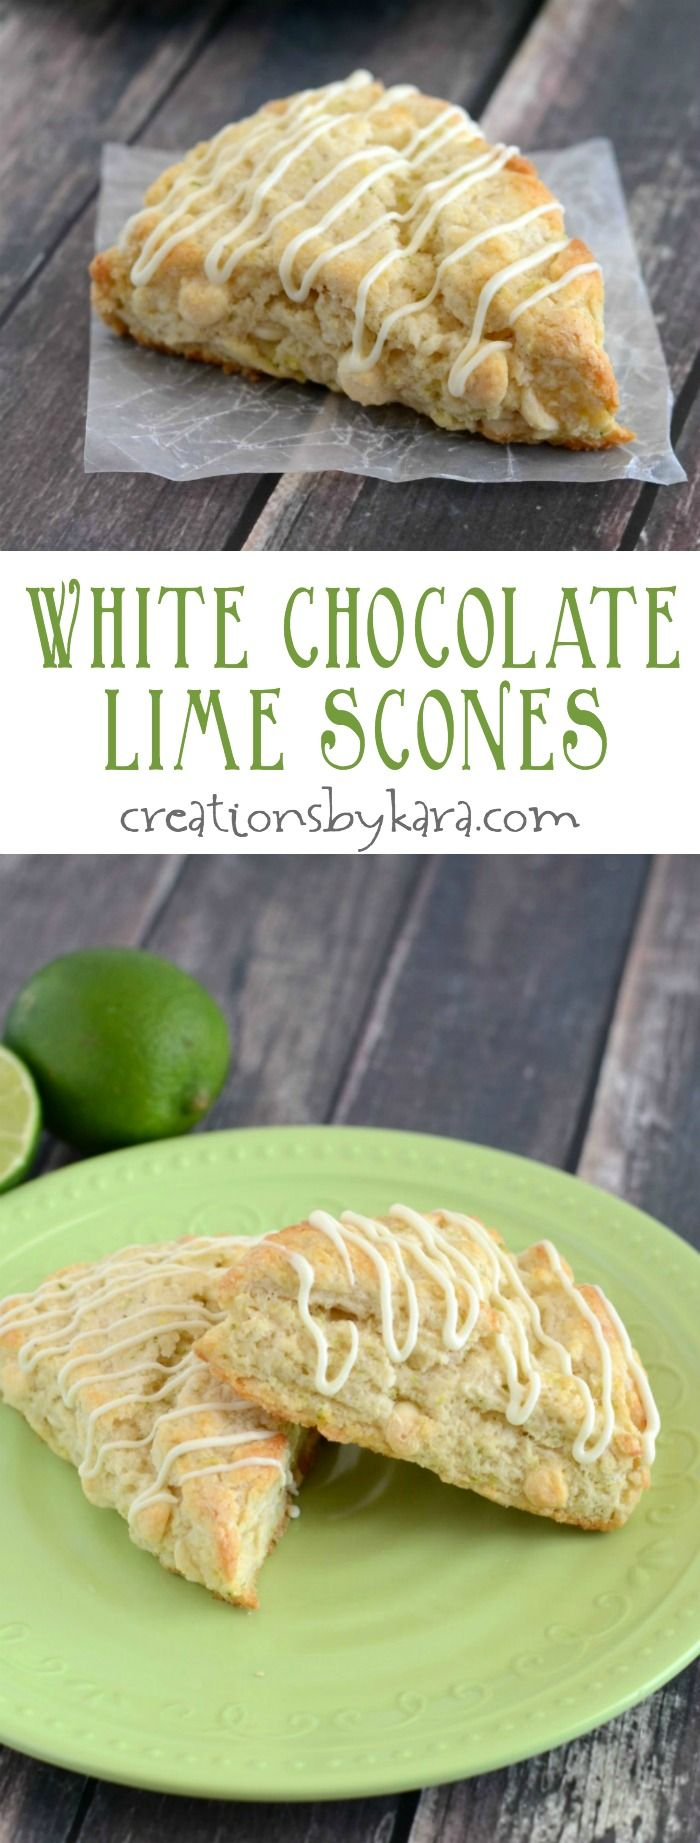 White Chocolate Lime Scones- soft, tender, and packed with citrus flavor, they are sure to become a favorite!